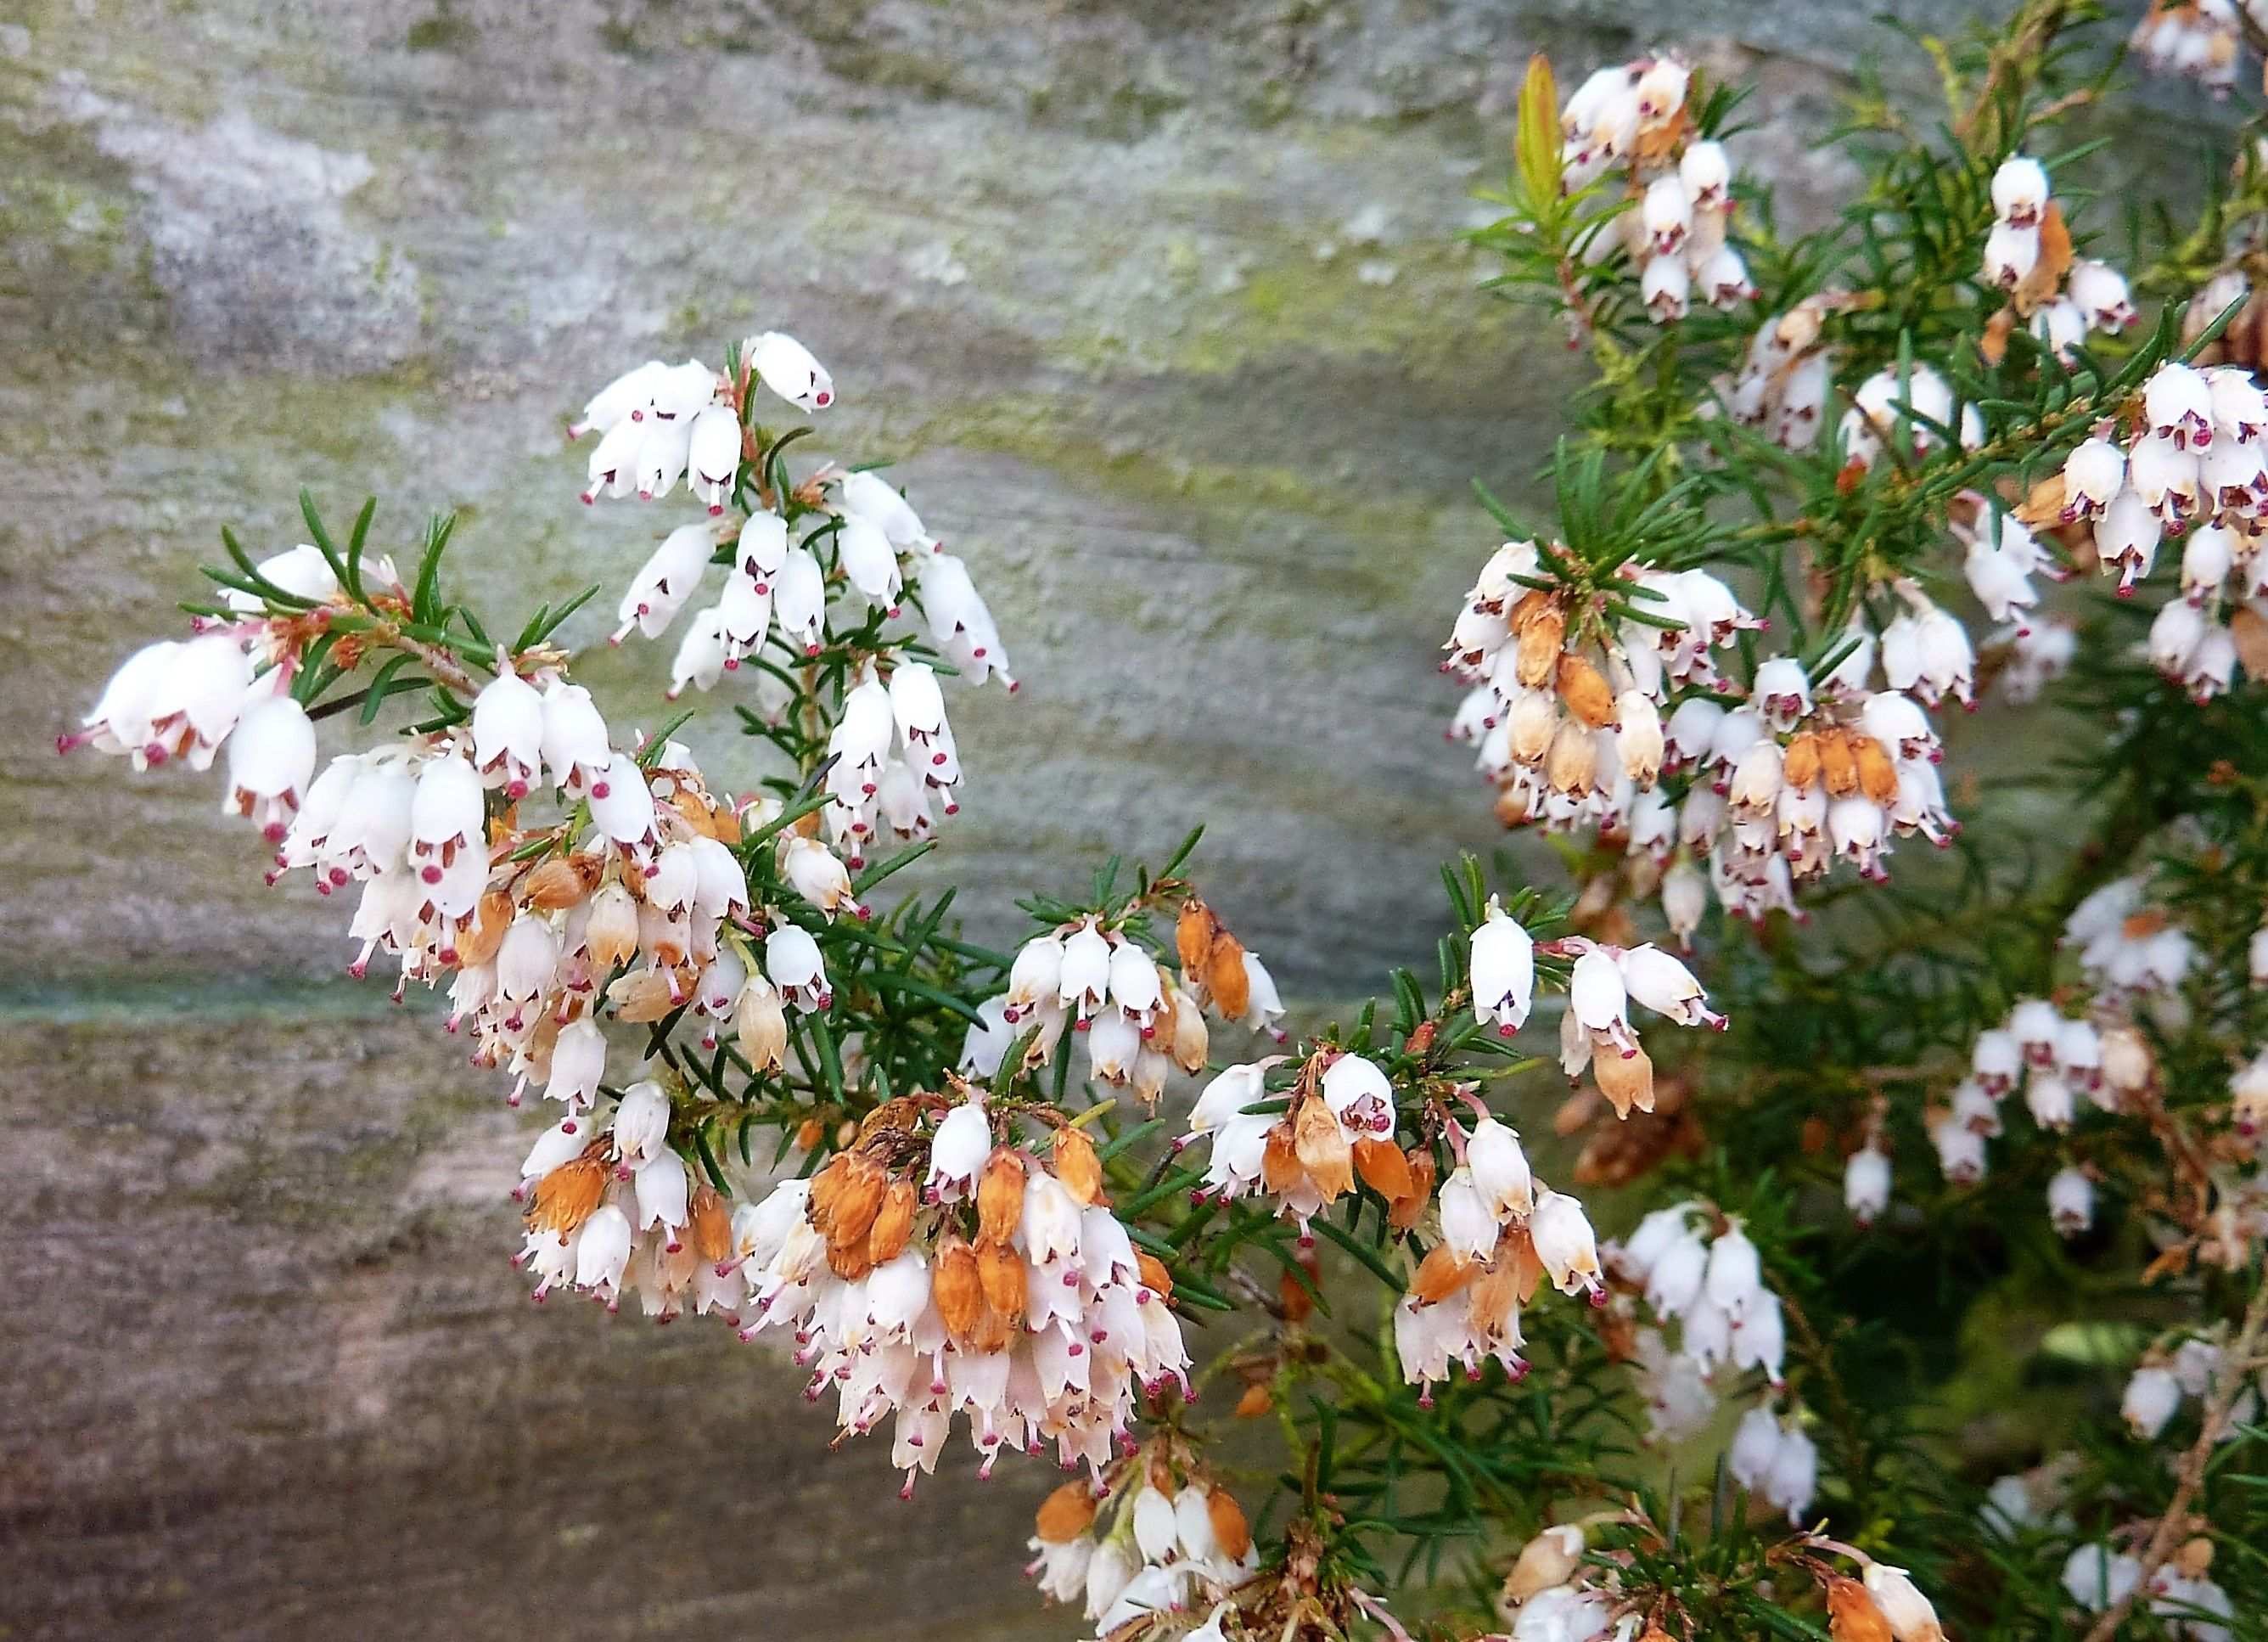 Erica Carnea White Winter Spring Heath With Small Bell Shaped